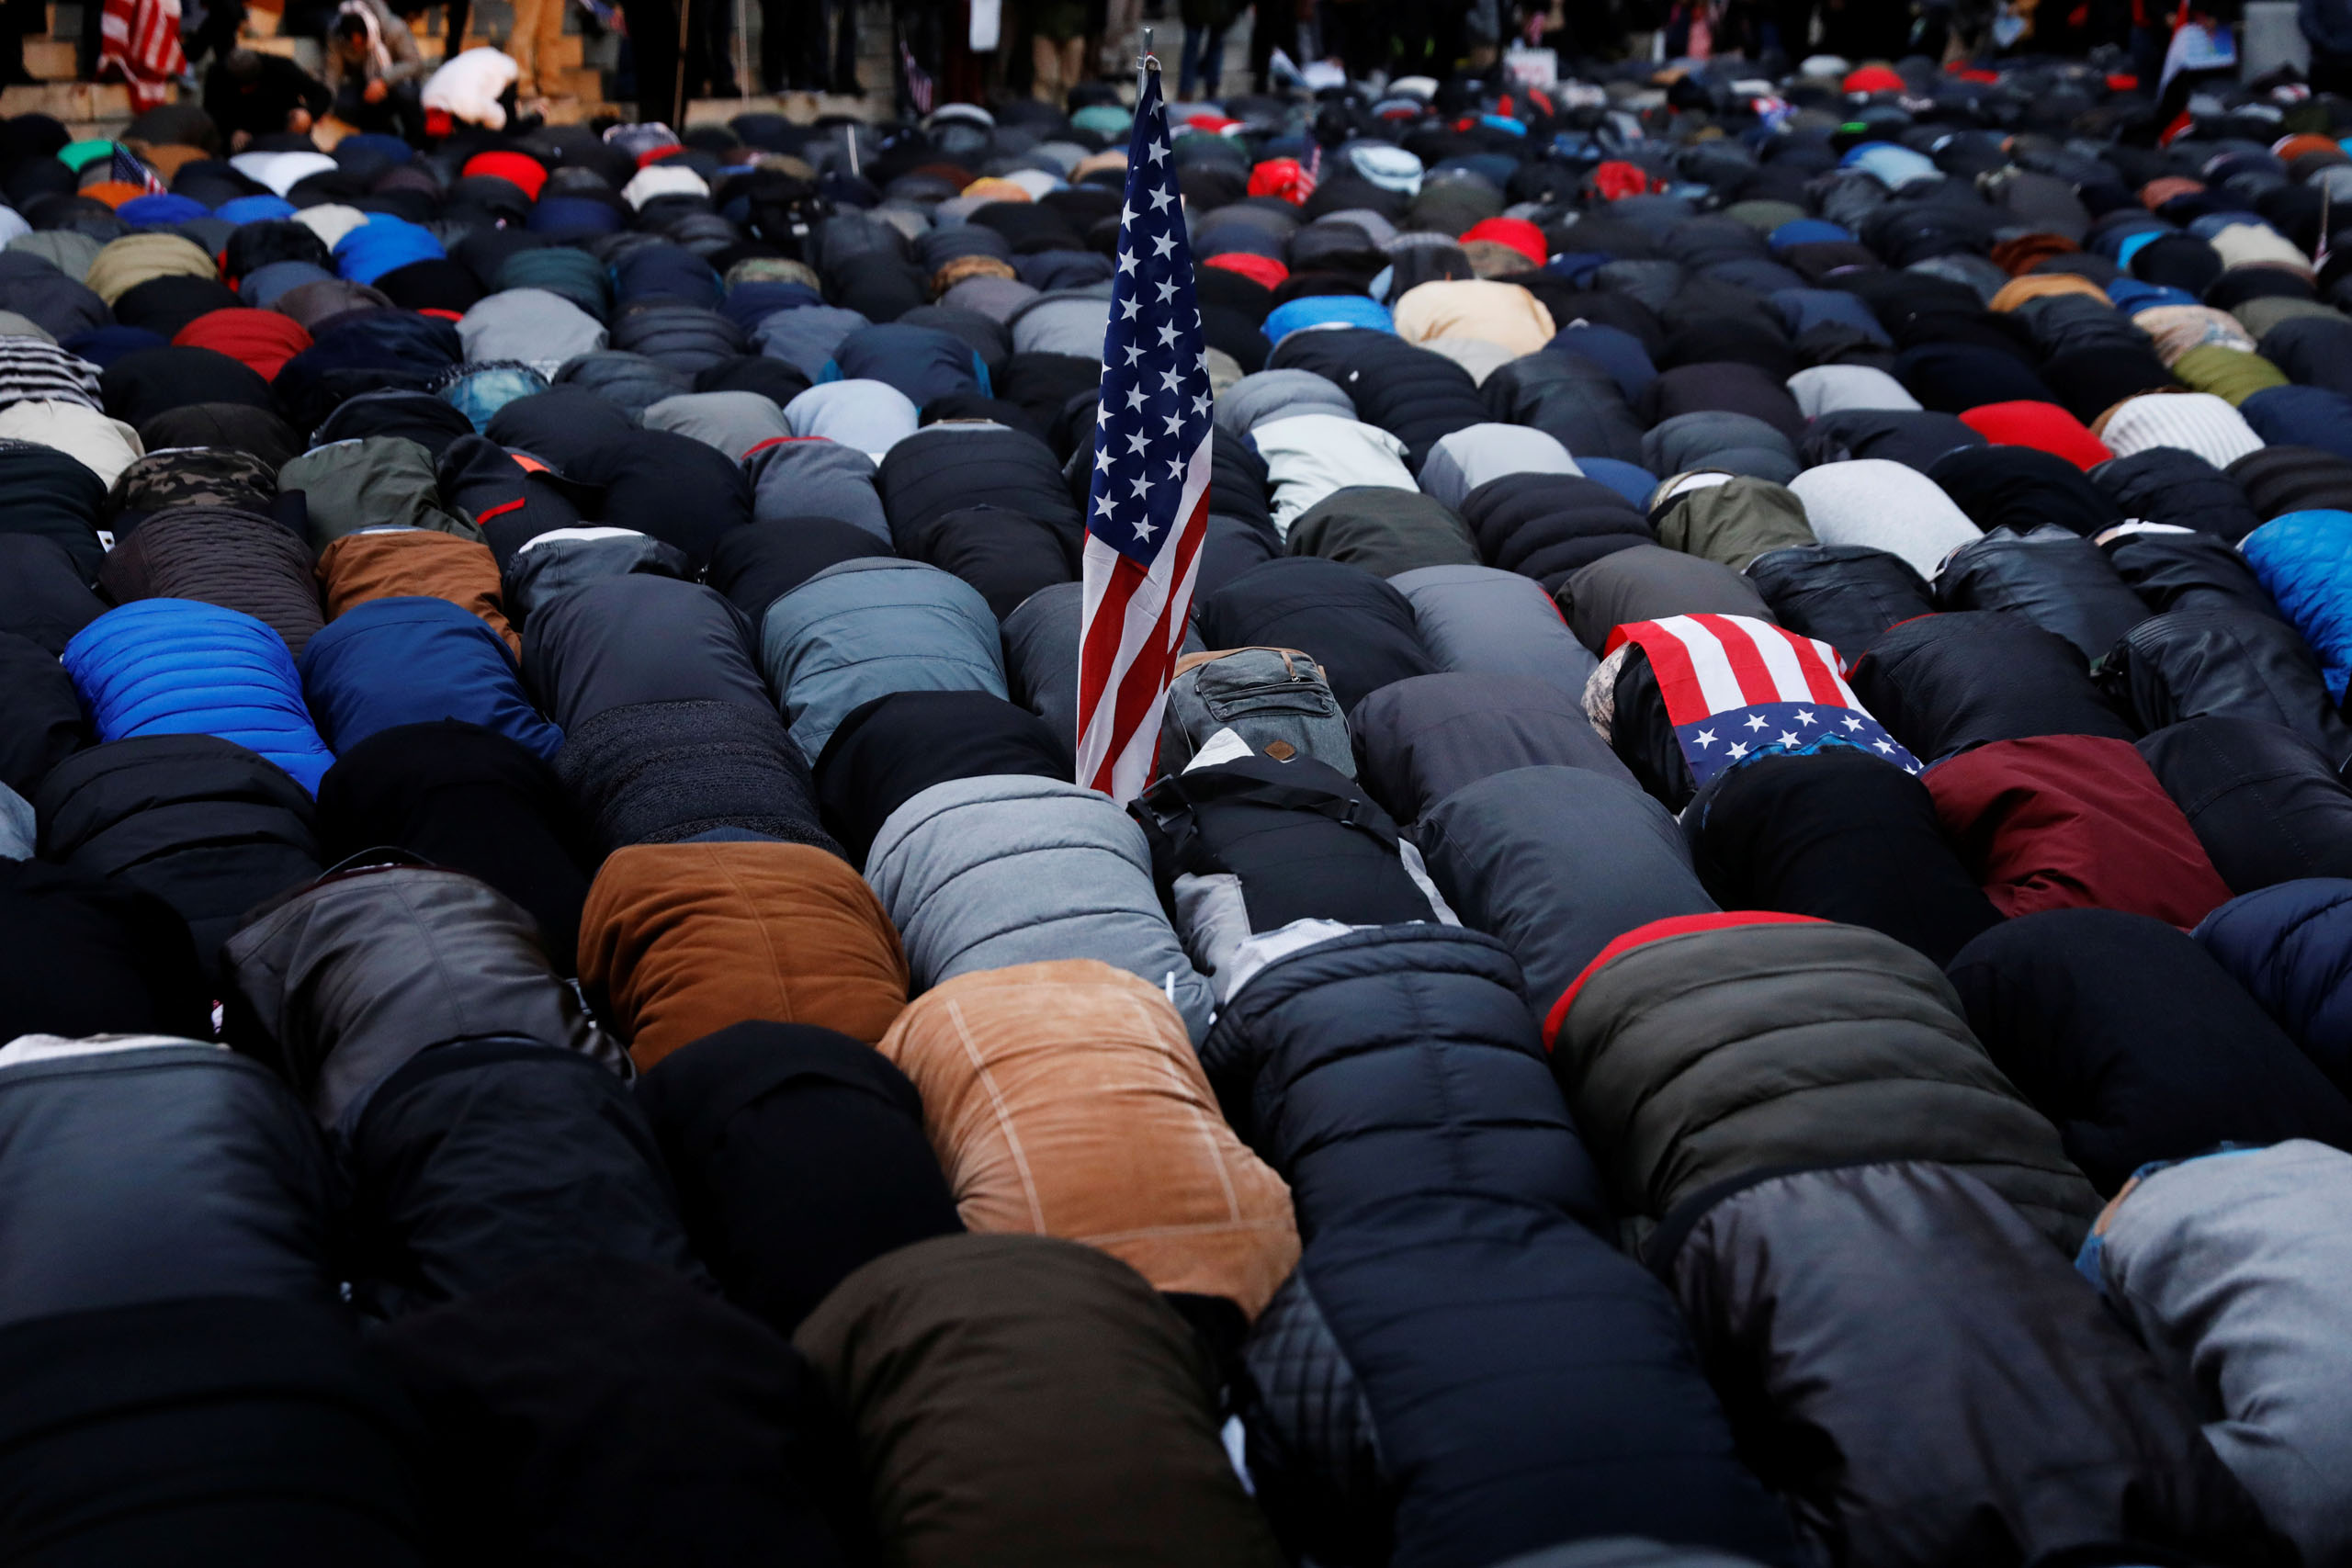 Demonstrators pray as they participate in a protest by the Yemeni community against President Donald Trump's travel ban in the Brooklyn borough of New York, on Feb. 2, 2017.